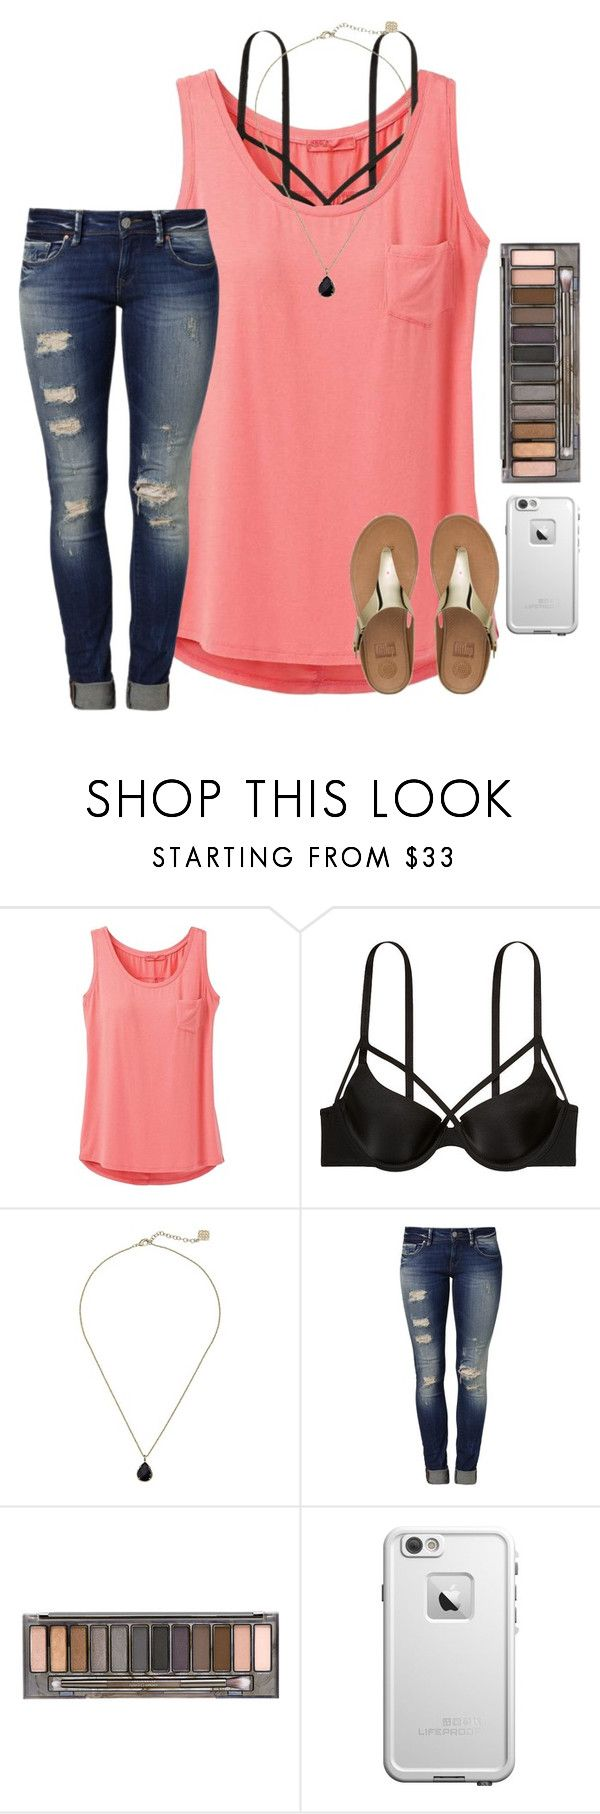 """O6. Swimming In Saltwater"" by star-lit-fashion ❤ liked on Polyvore featuring prAna, Victoria's Secret, Kendra Scott, Mavi, Urban Decay, LifeProof and FitFlop"